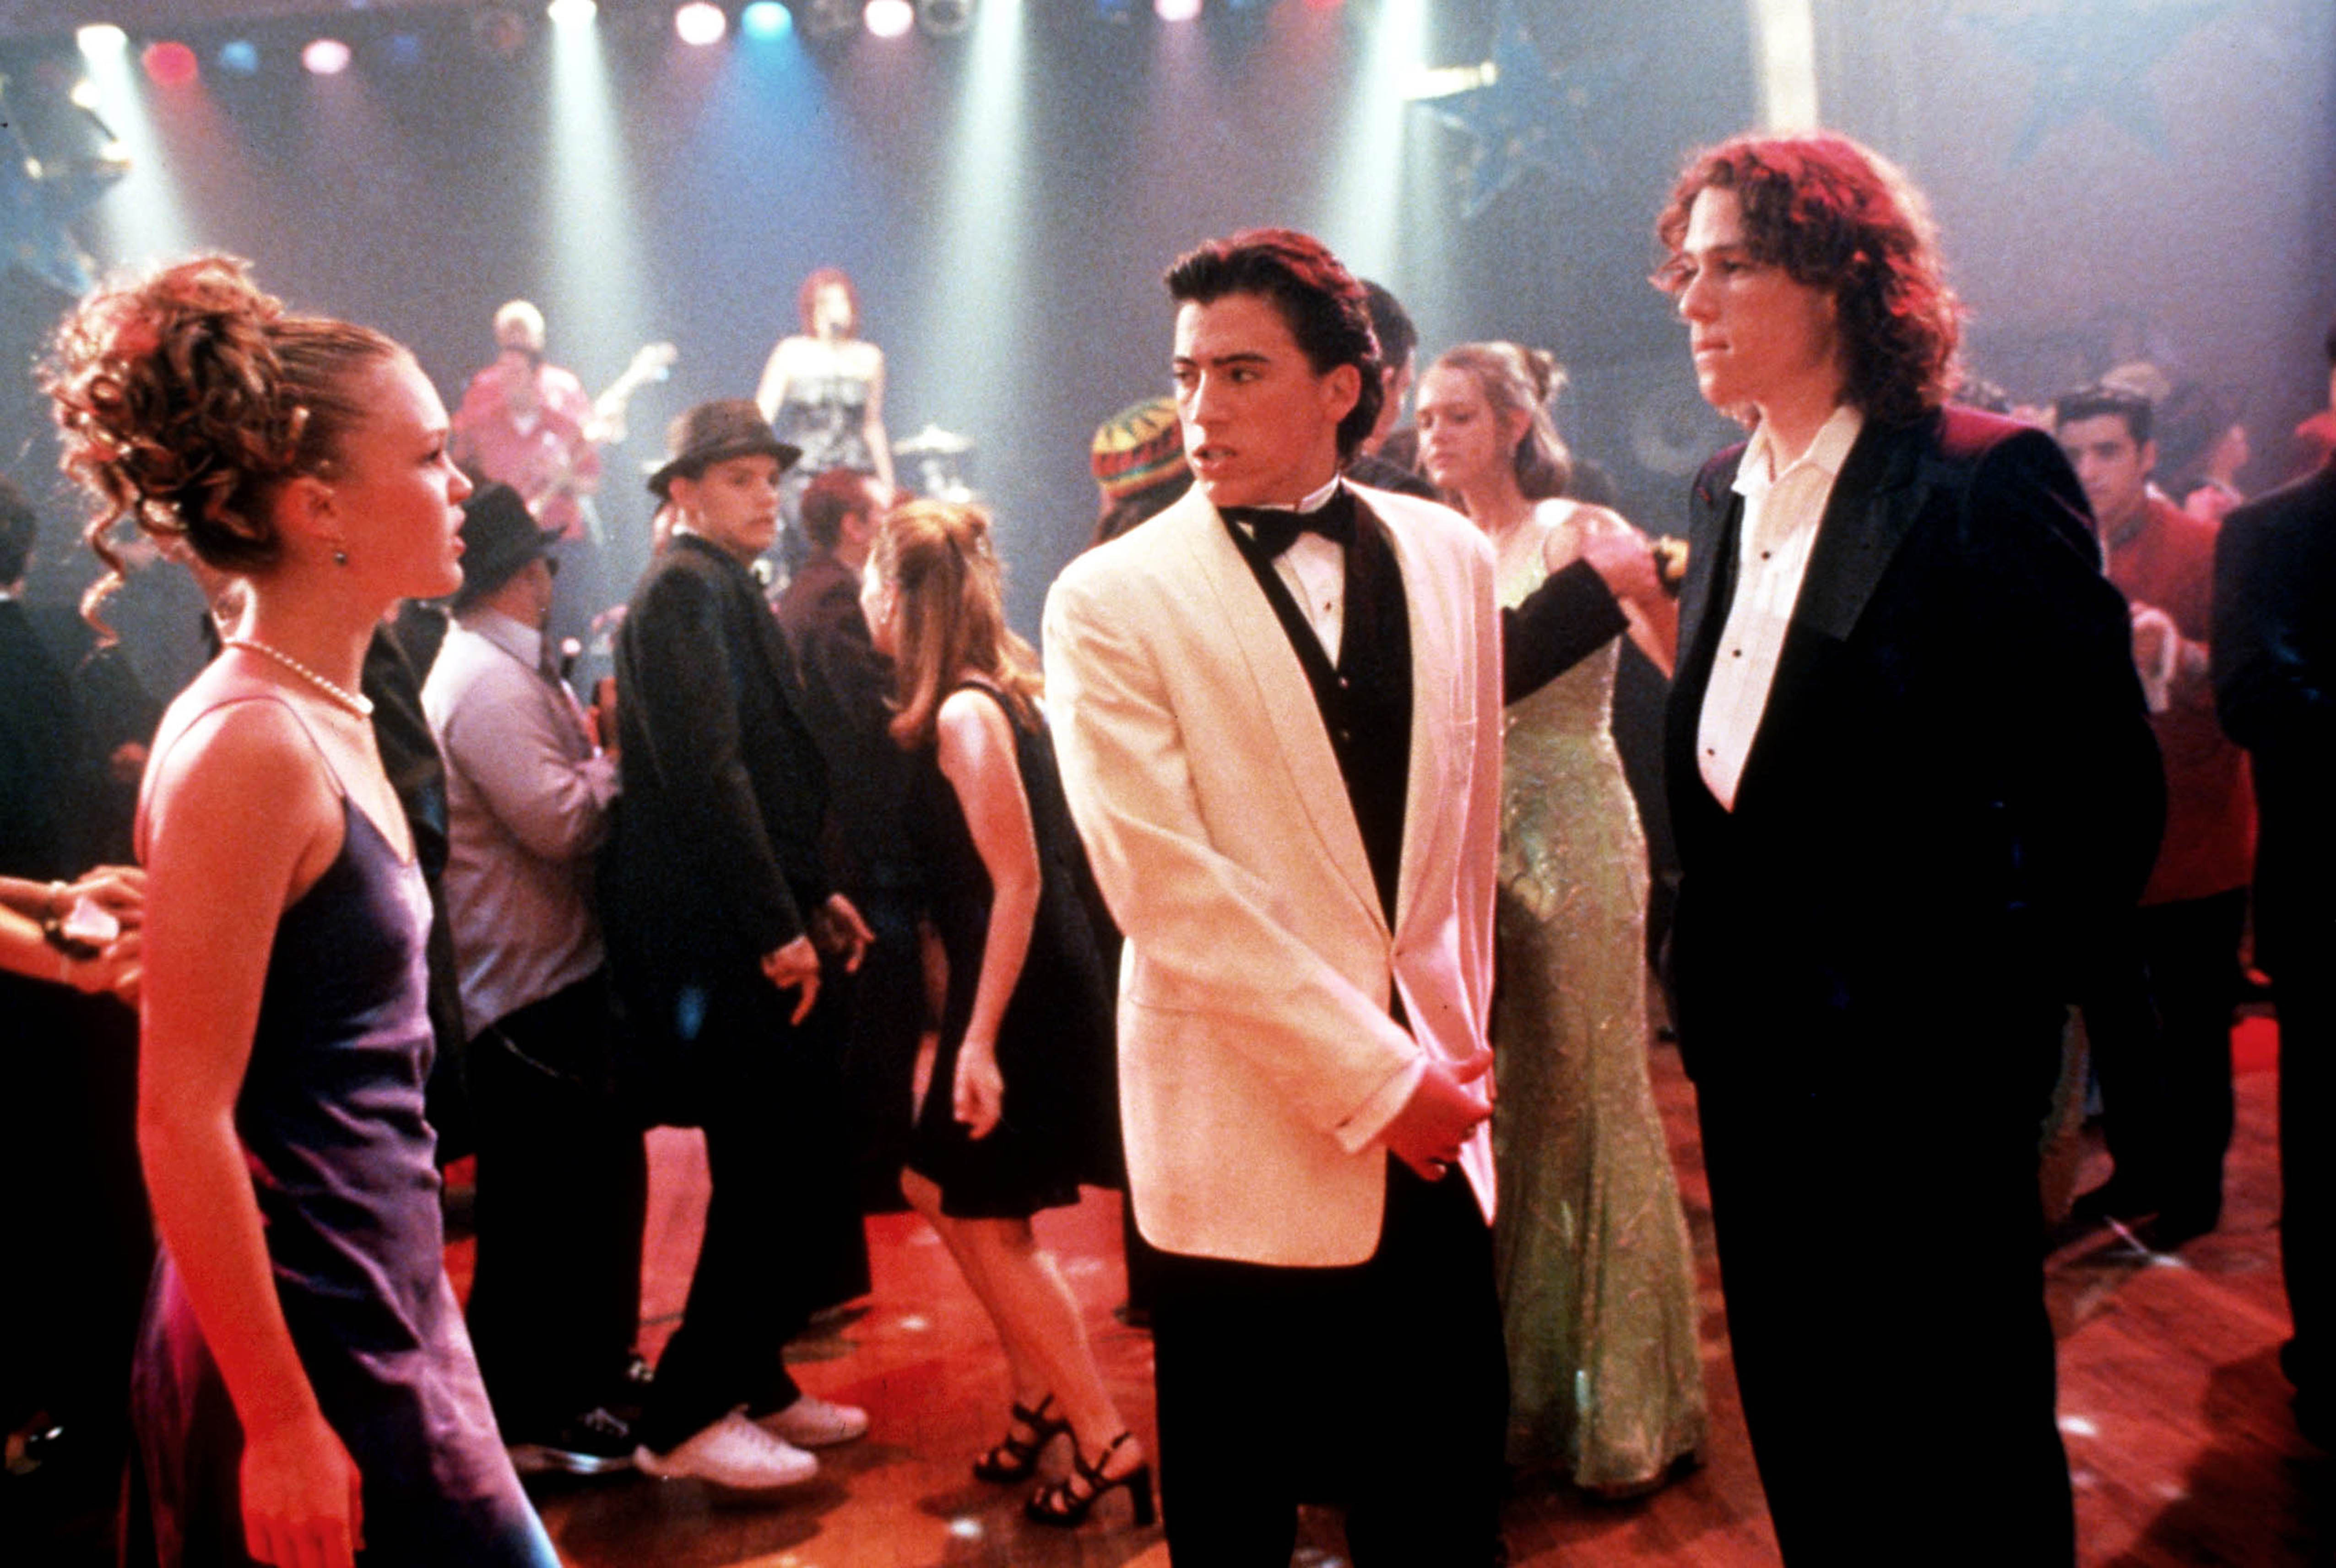 10 Things I Hate About You is sexist—but still great to